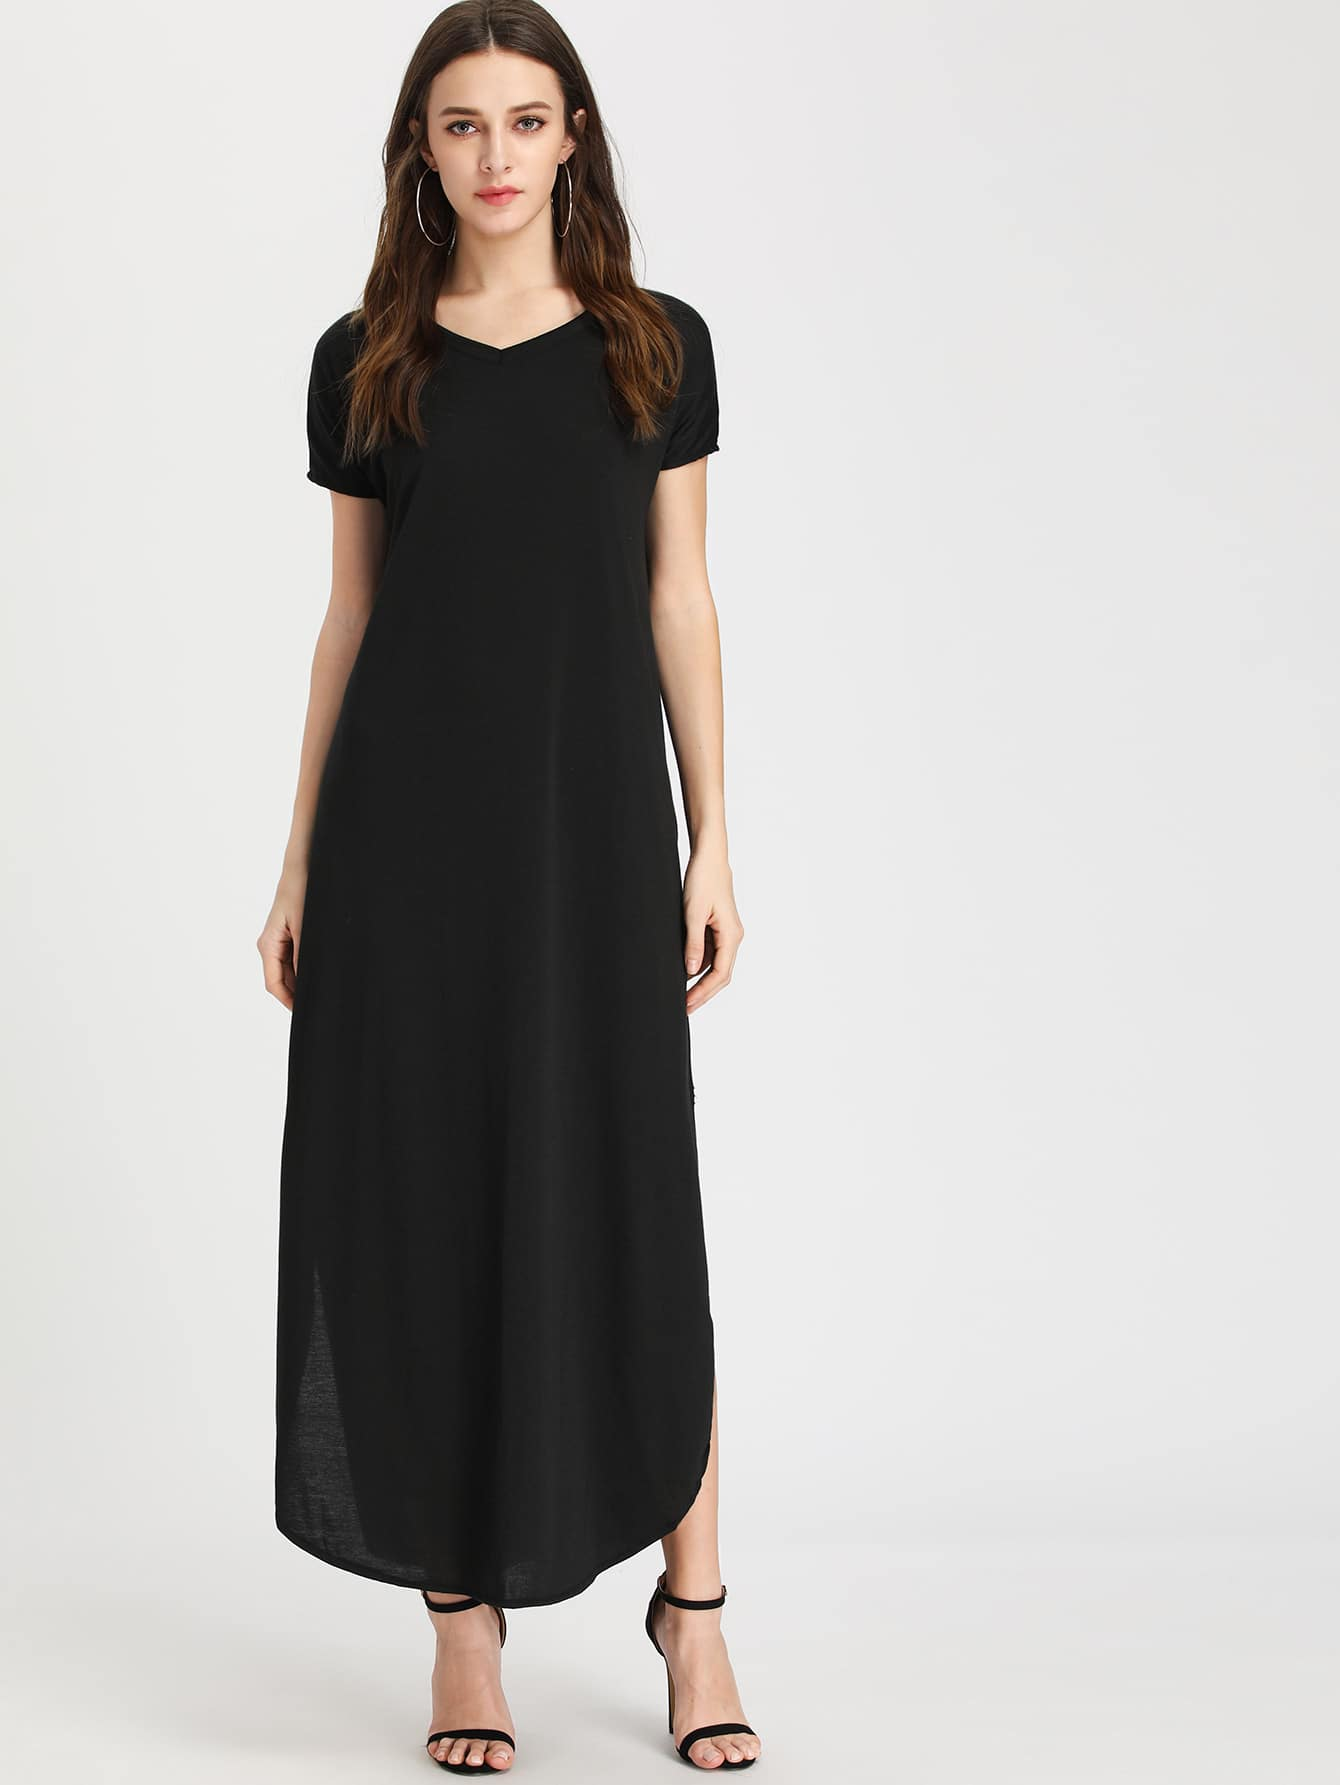 Curved Hem Full Length Tee Dress batwing sleeve pocket side curved hem textured dress